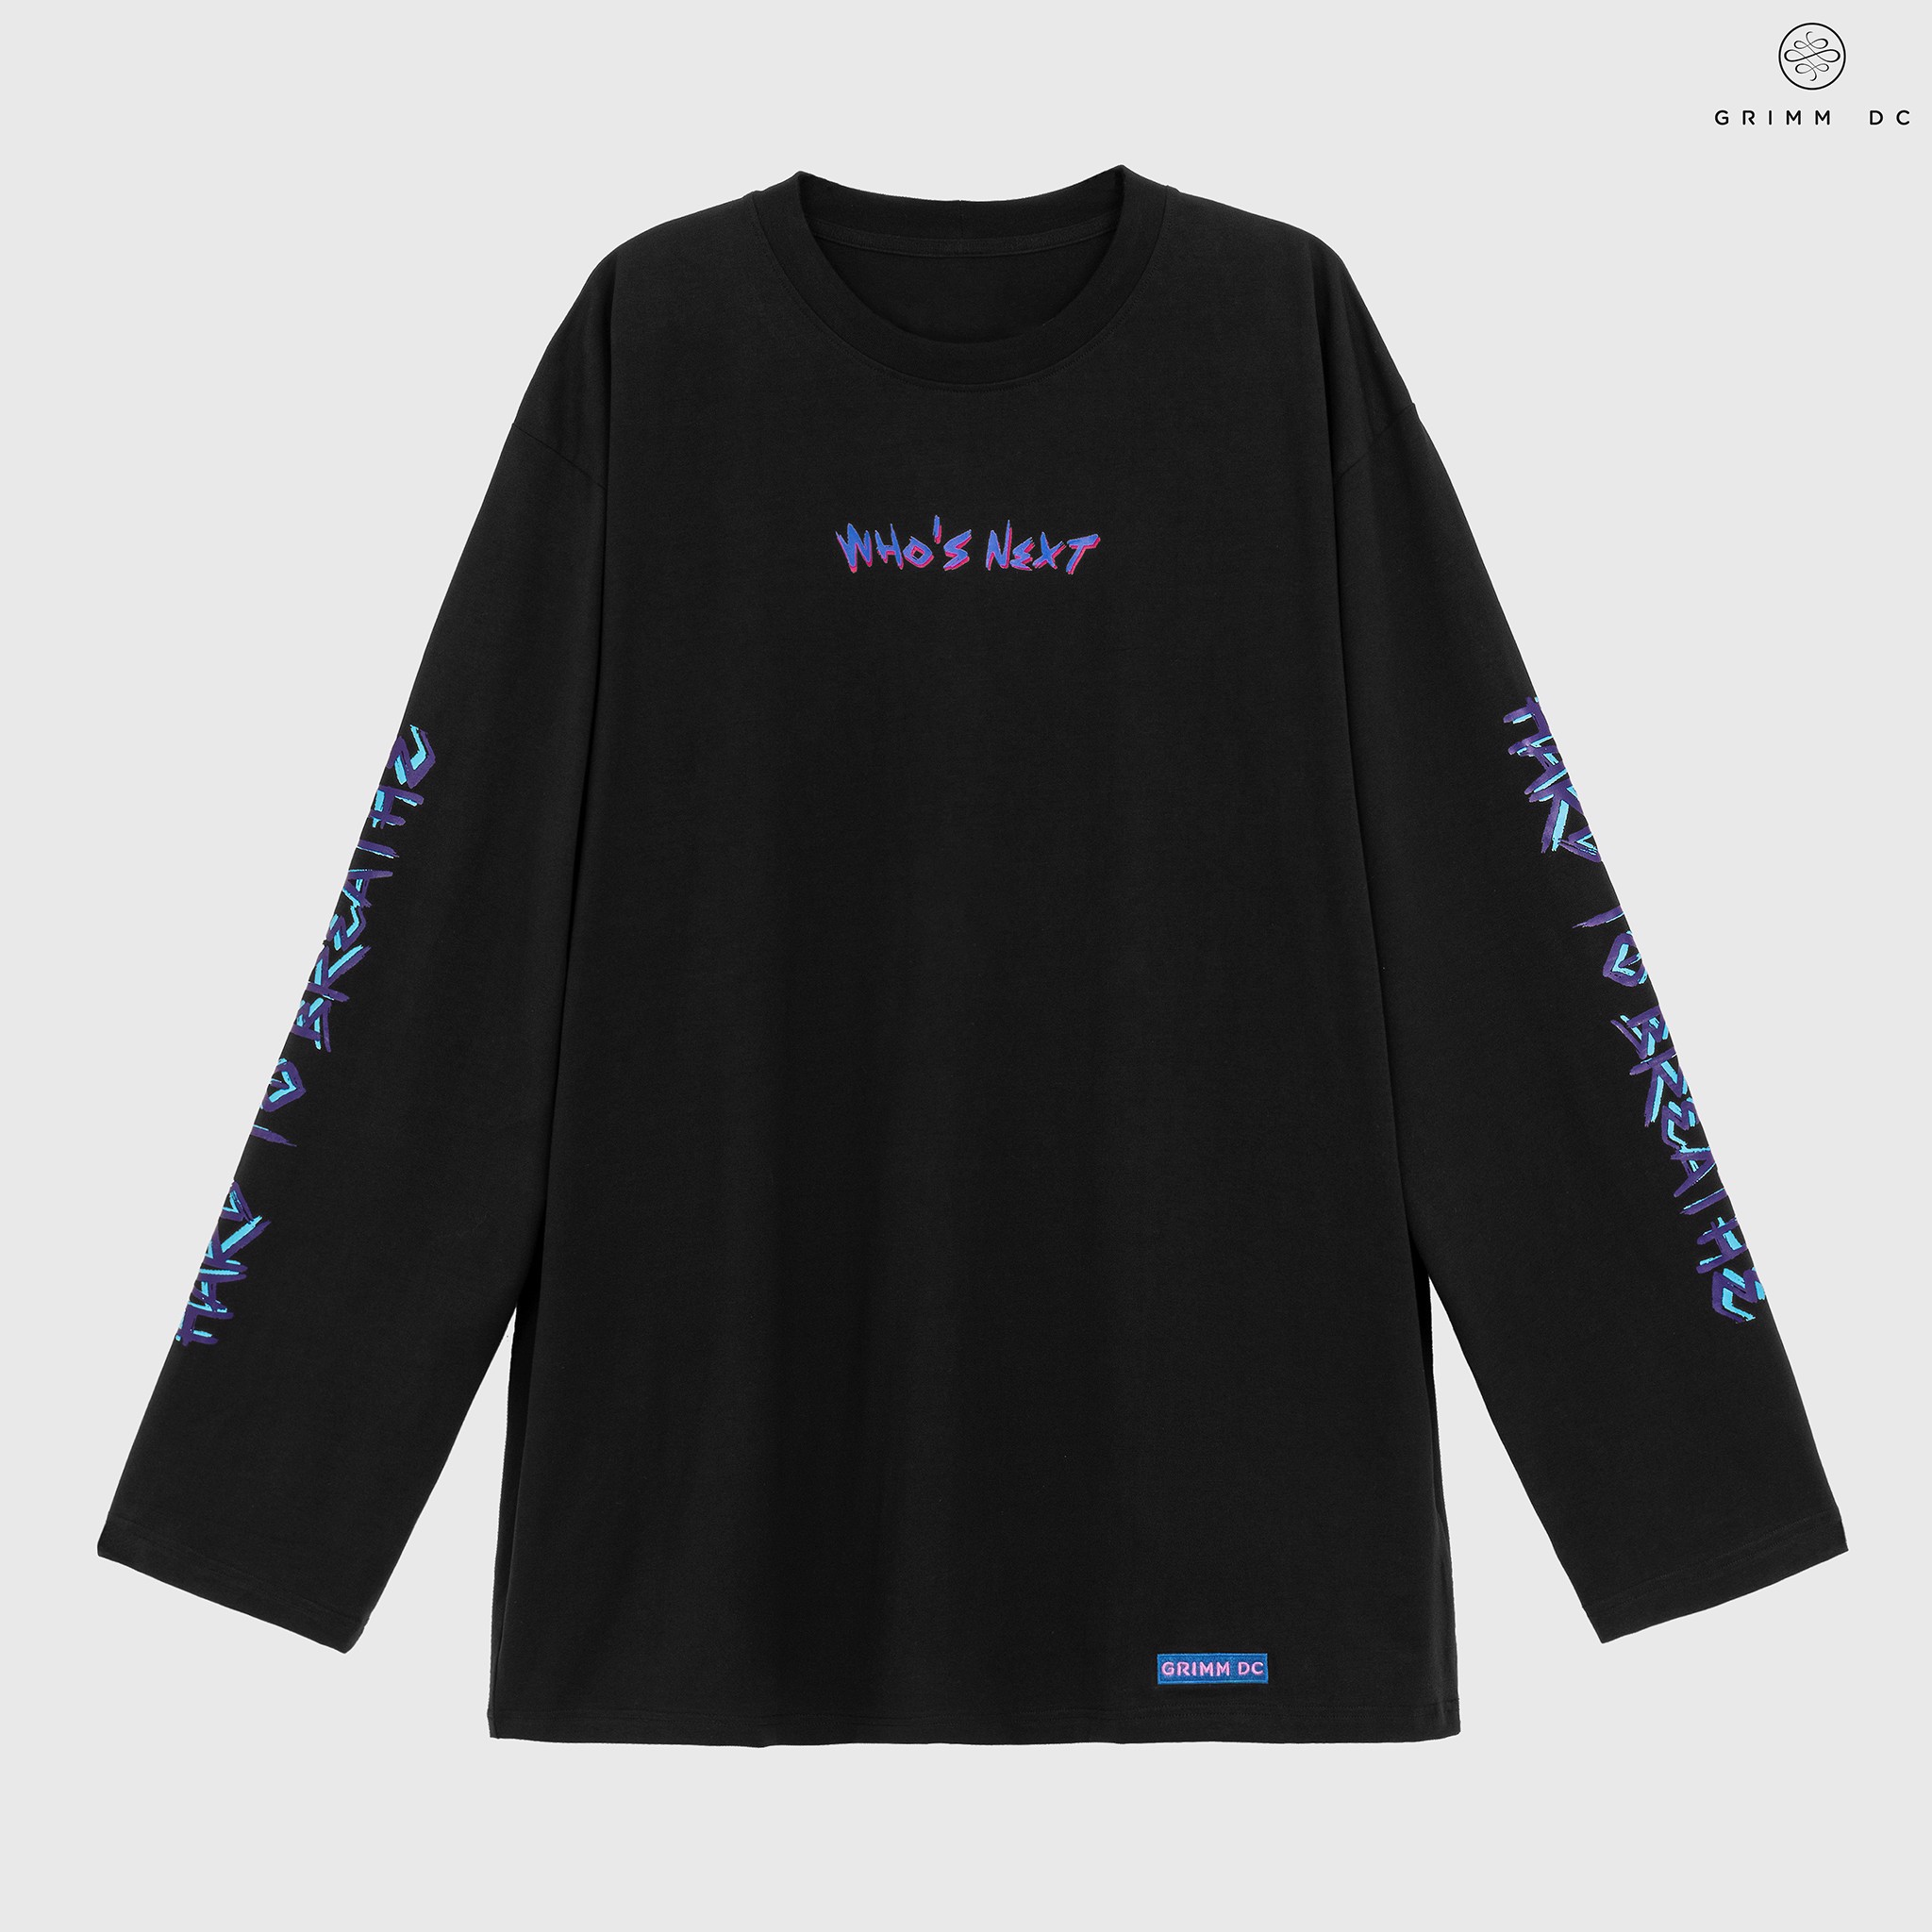 Hard to breathe long sleeve